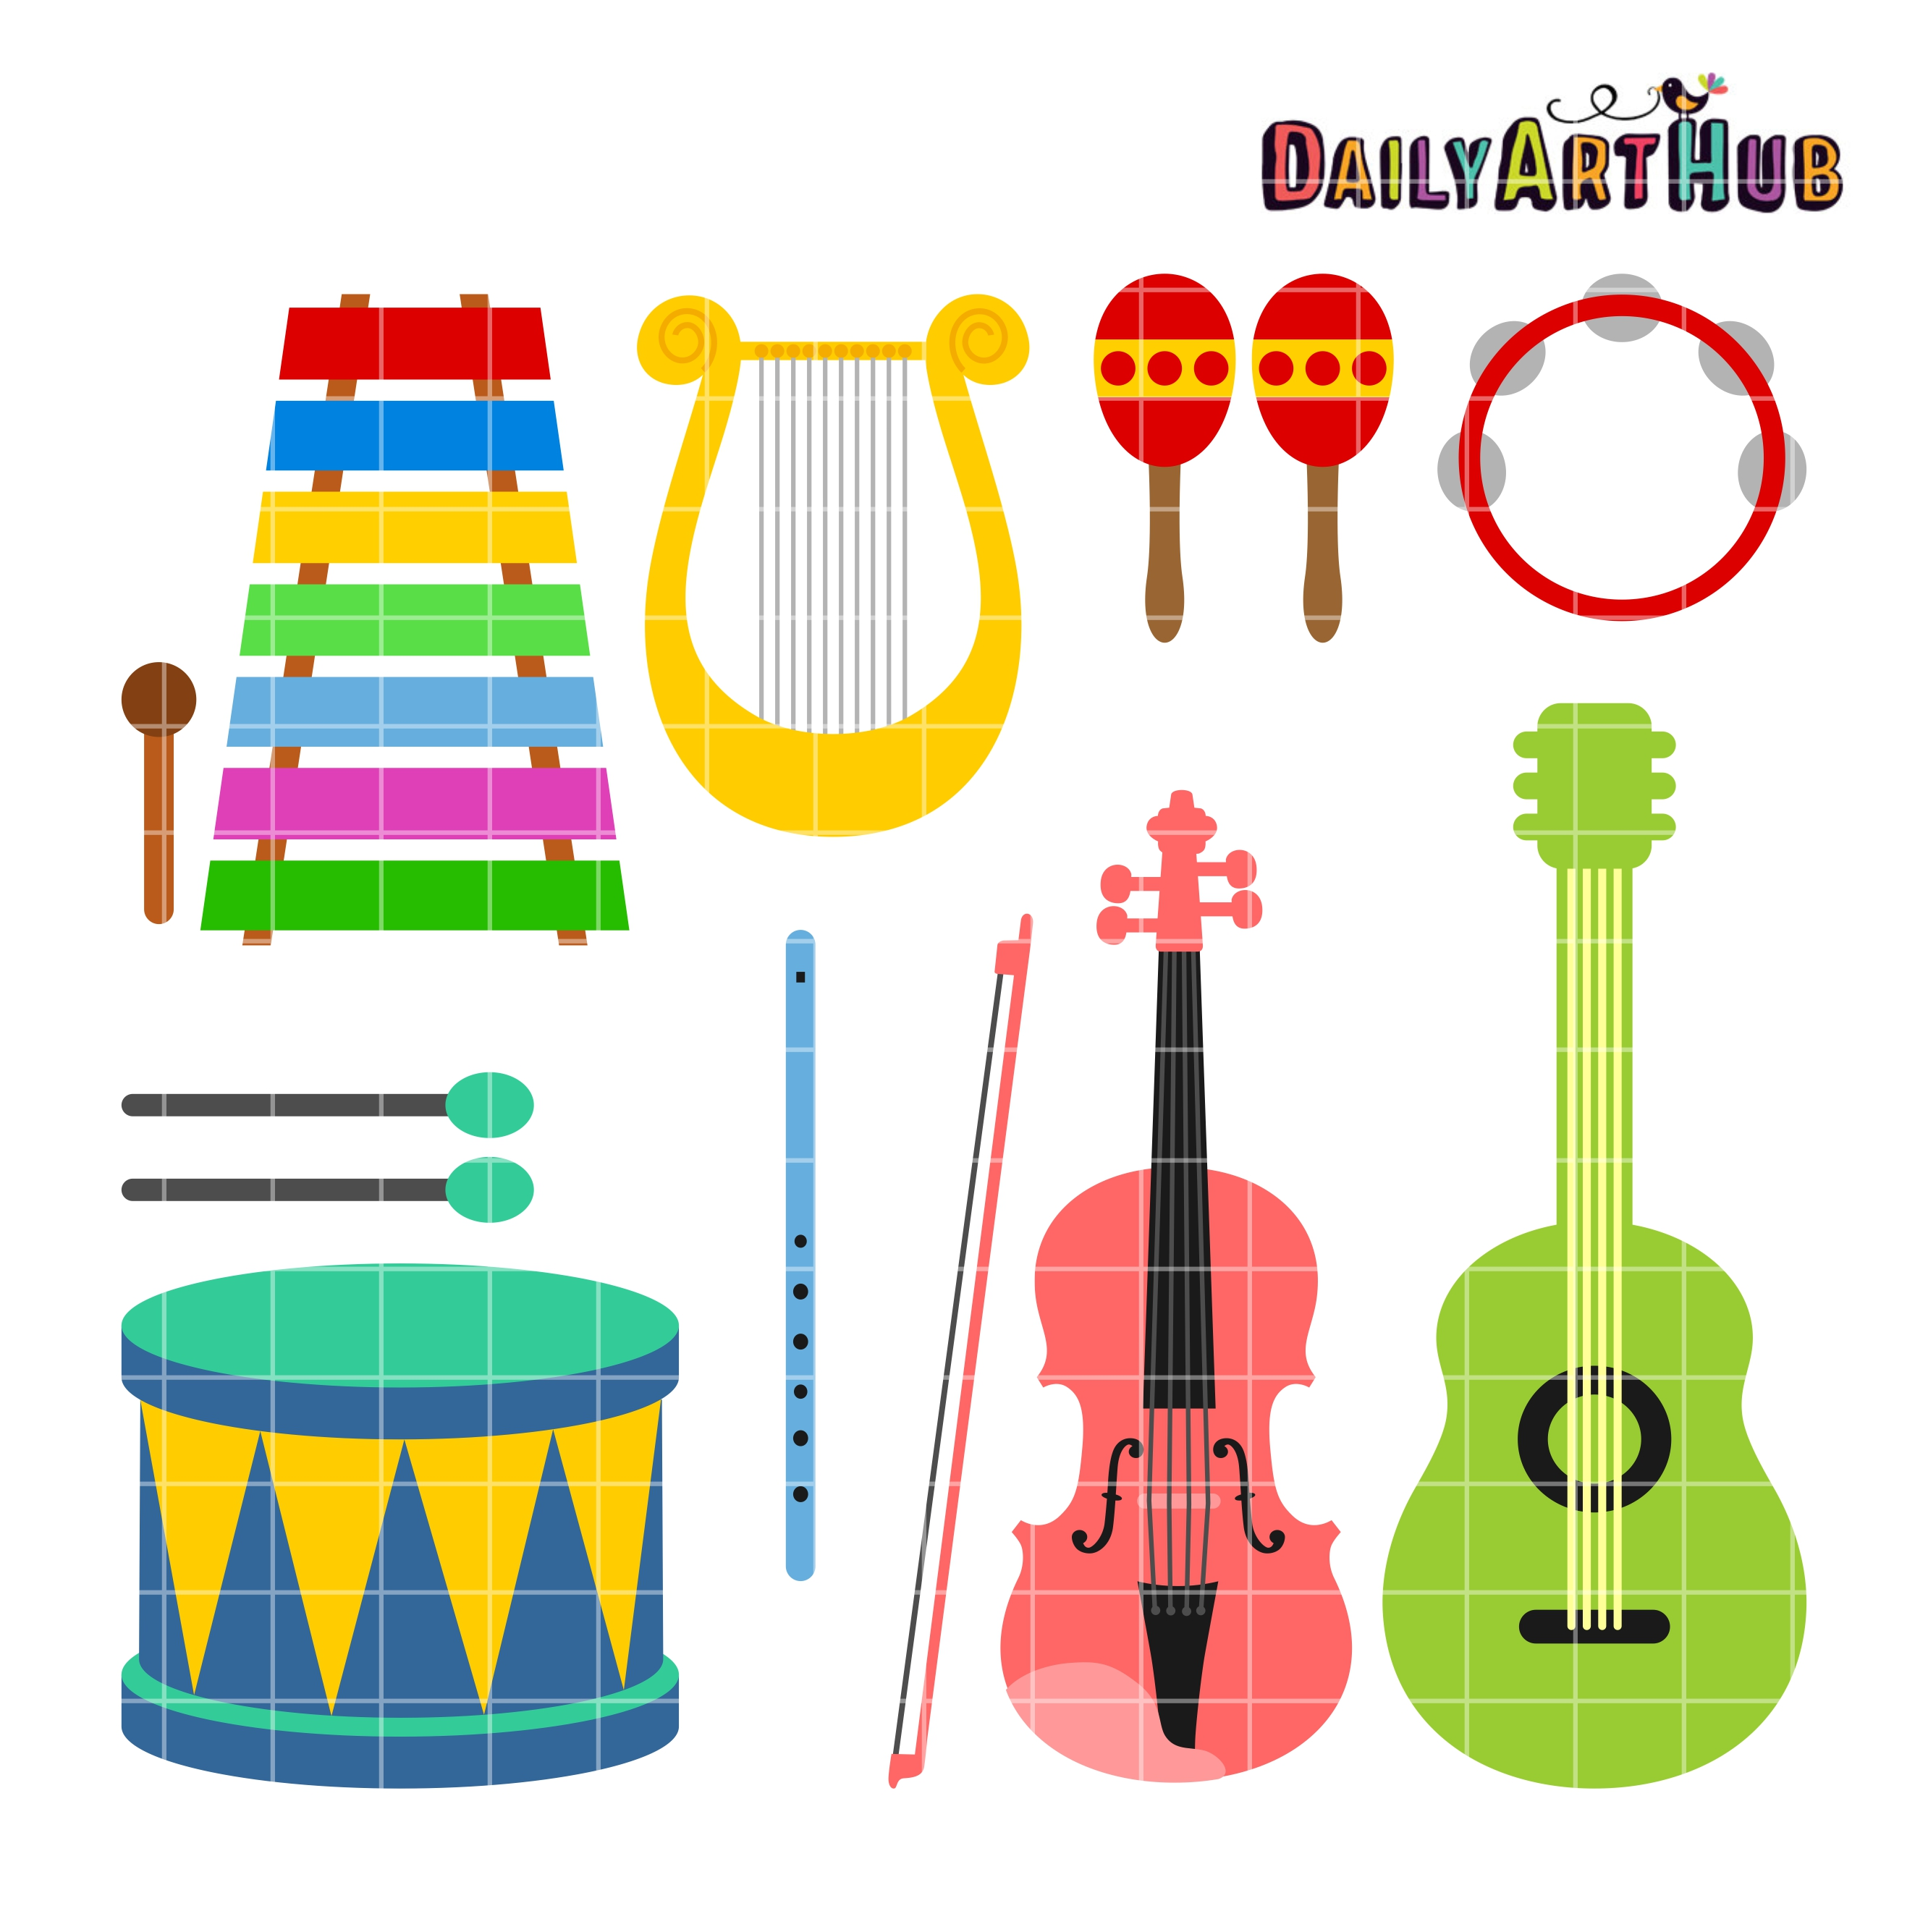 musical instruments clip art set daily art hub free clip art rh dailyarthub com musical instruments clipart free download musical instruments clipart png